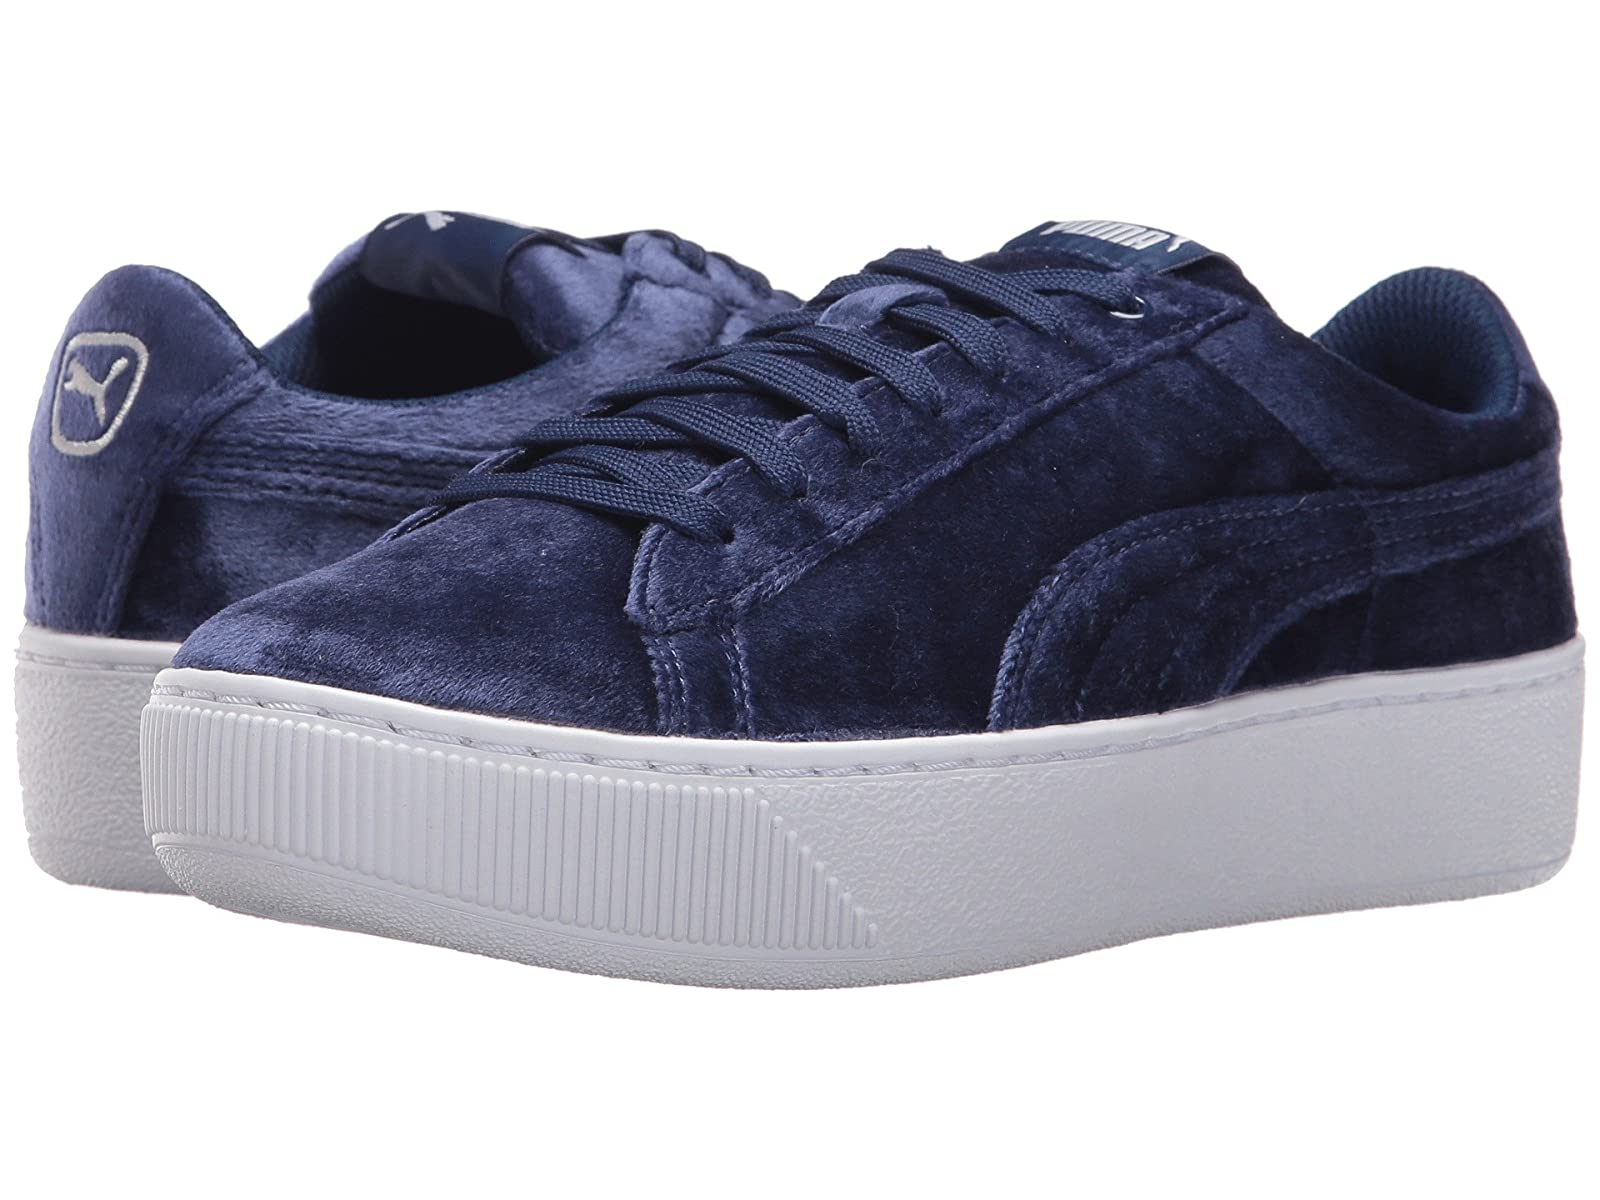 PUMA Puma Vikky Platform VR BLCheap and distinctive eye-catching shoes